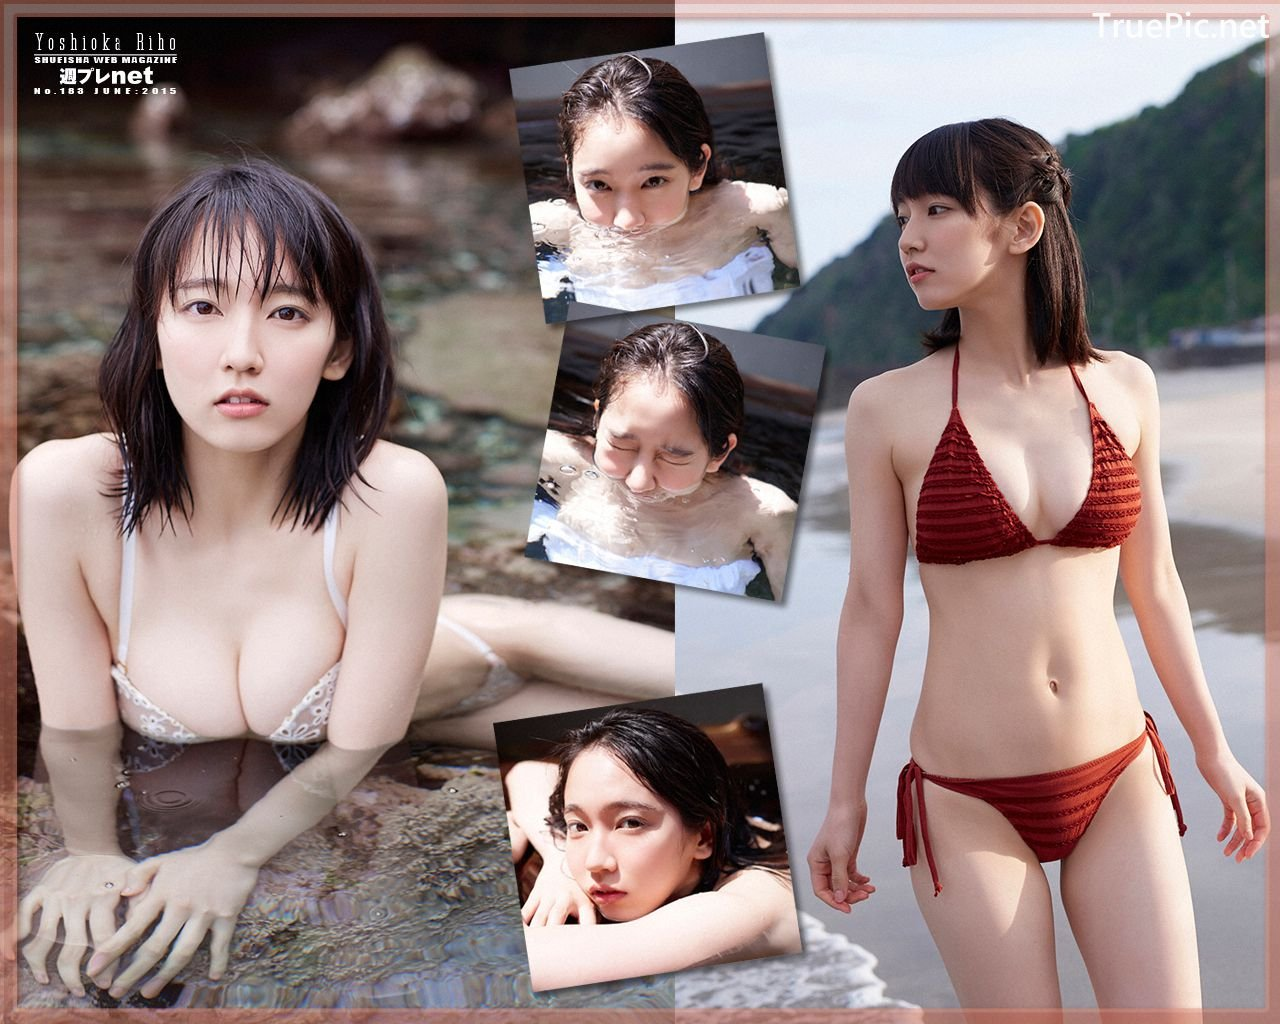 Image-Japanese-Actress-And-Model-Riho-Yoshioka-Pure-Beauty-Of-Sea-Goddess-TruePic.net- Picture-2